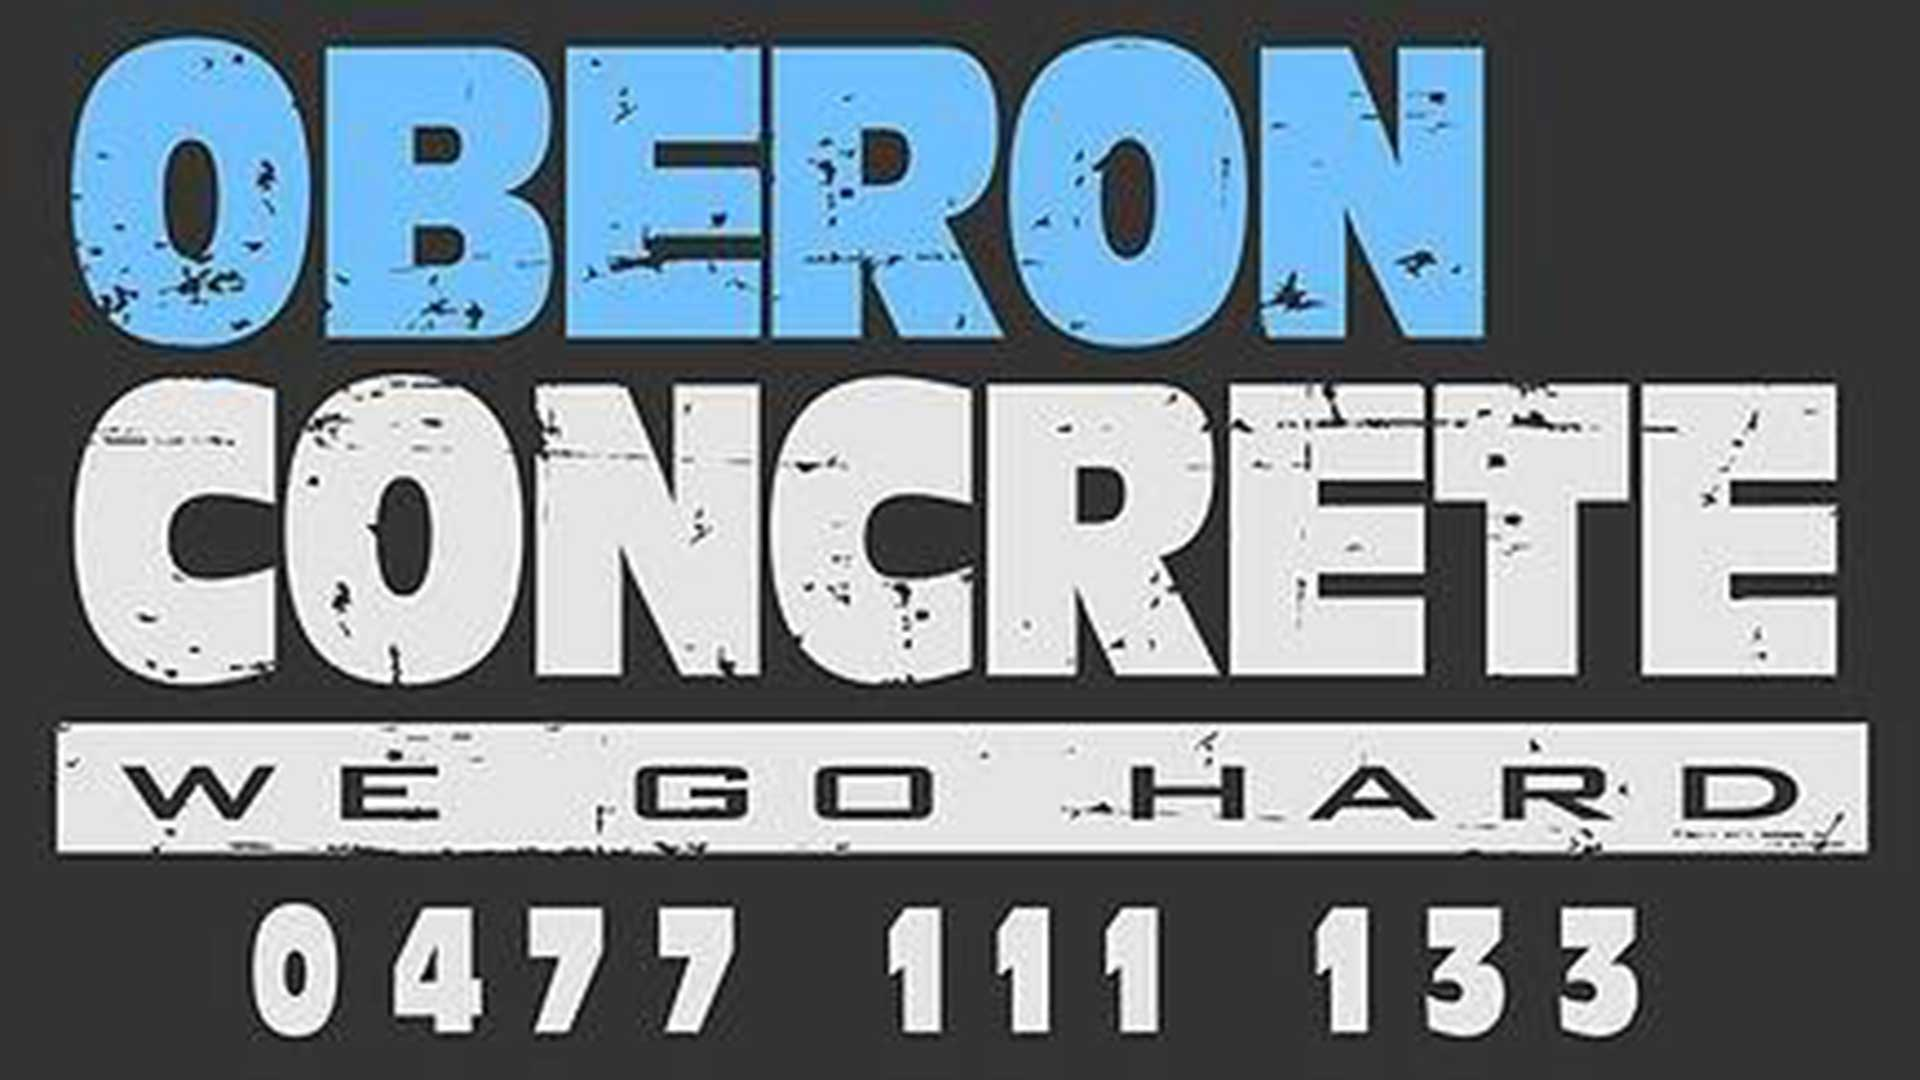 Business - Oberon Concrete | Visit Oberon